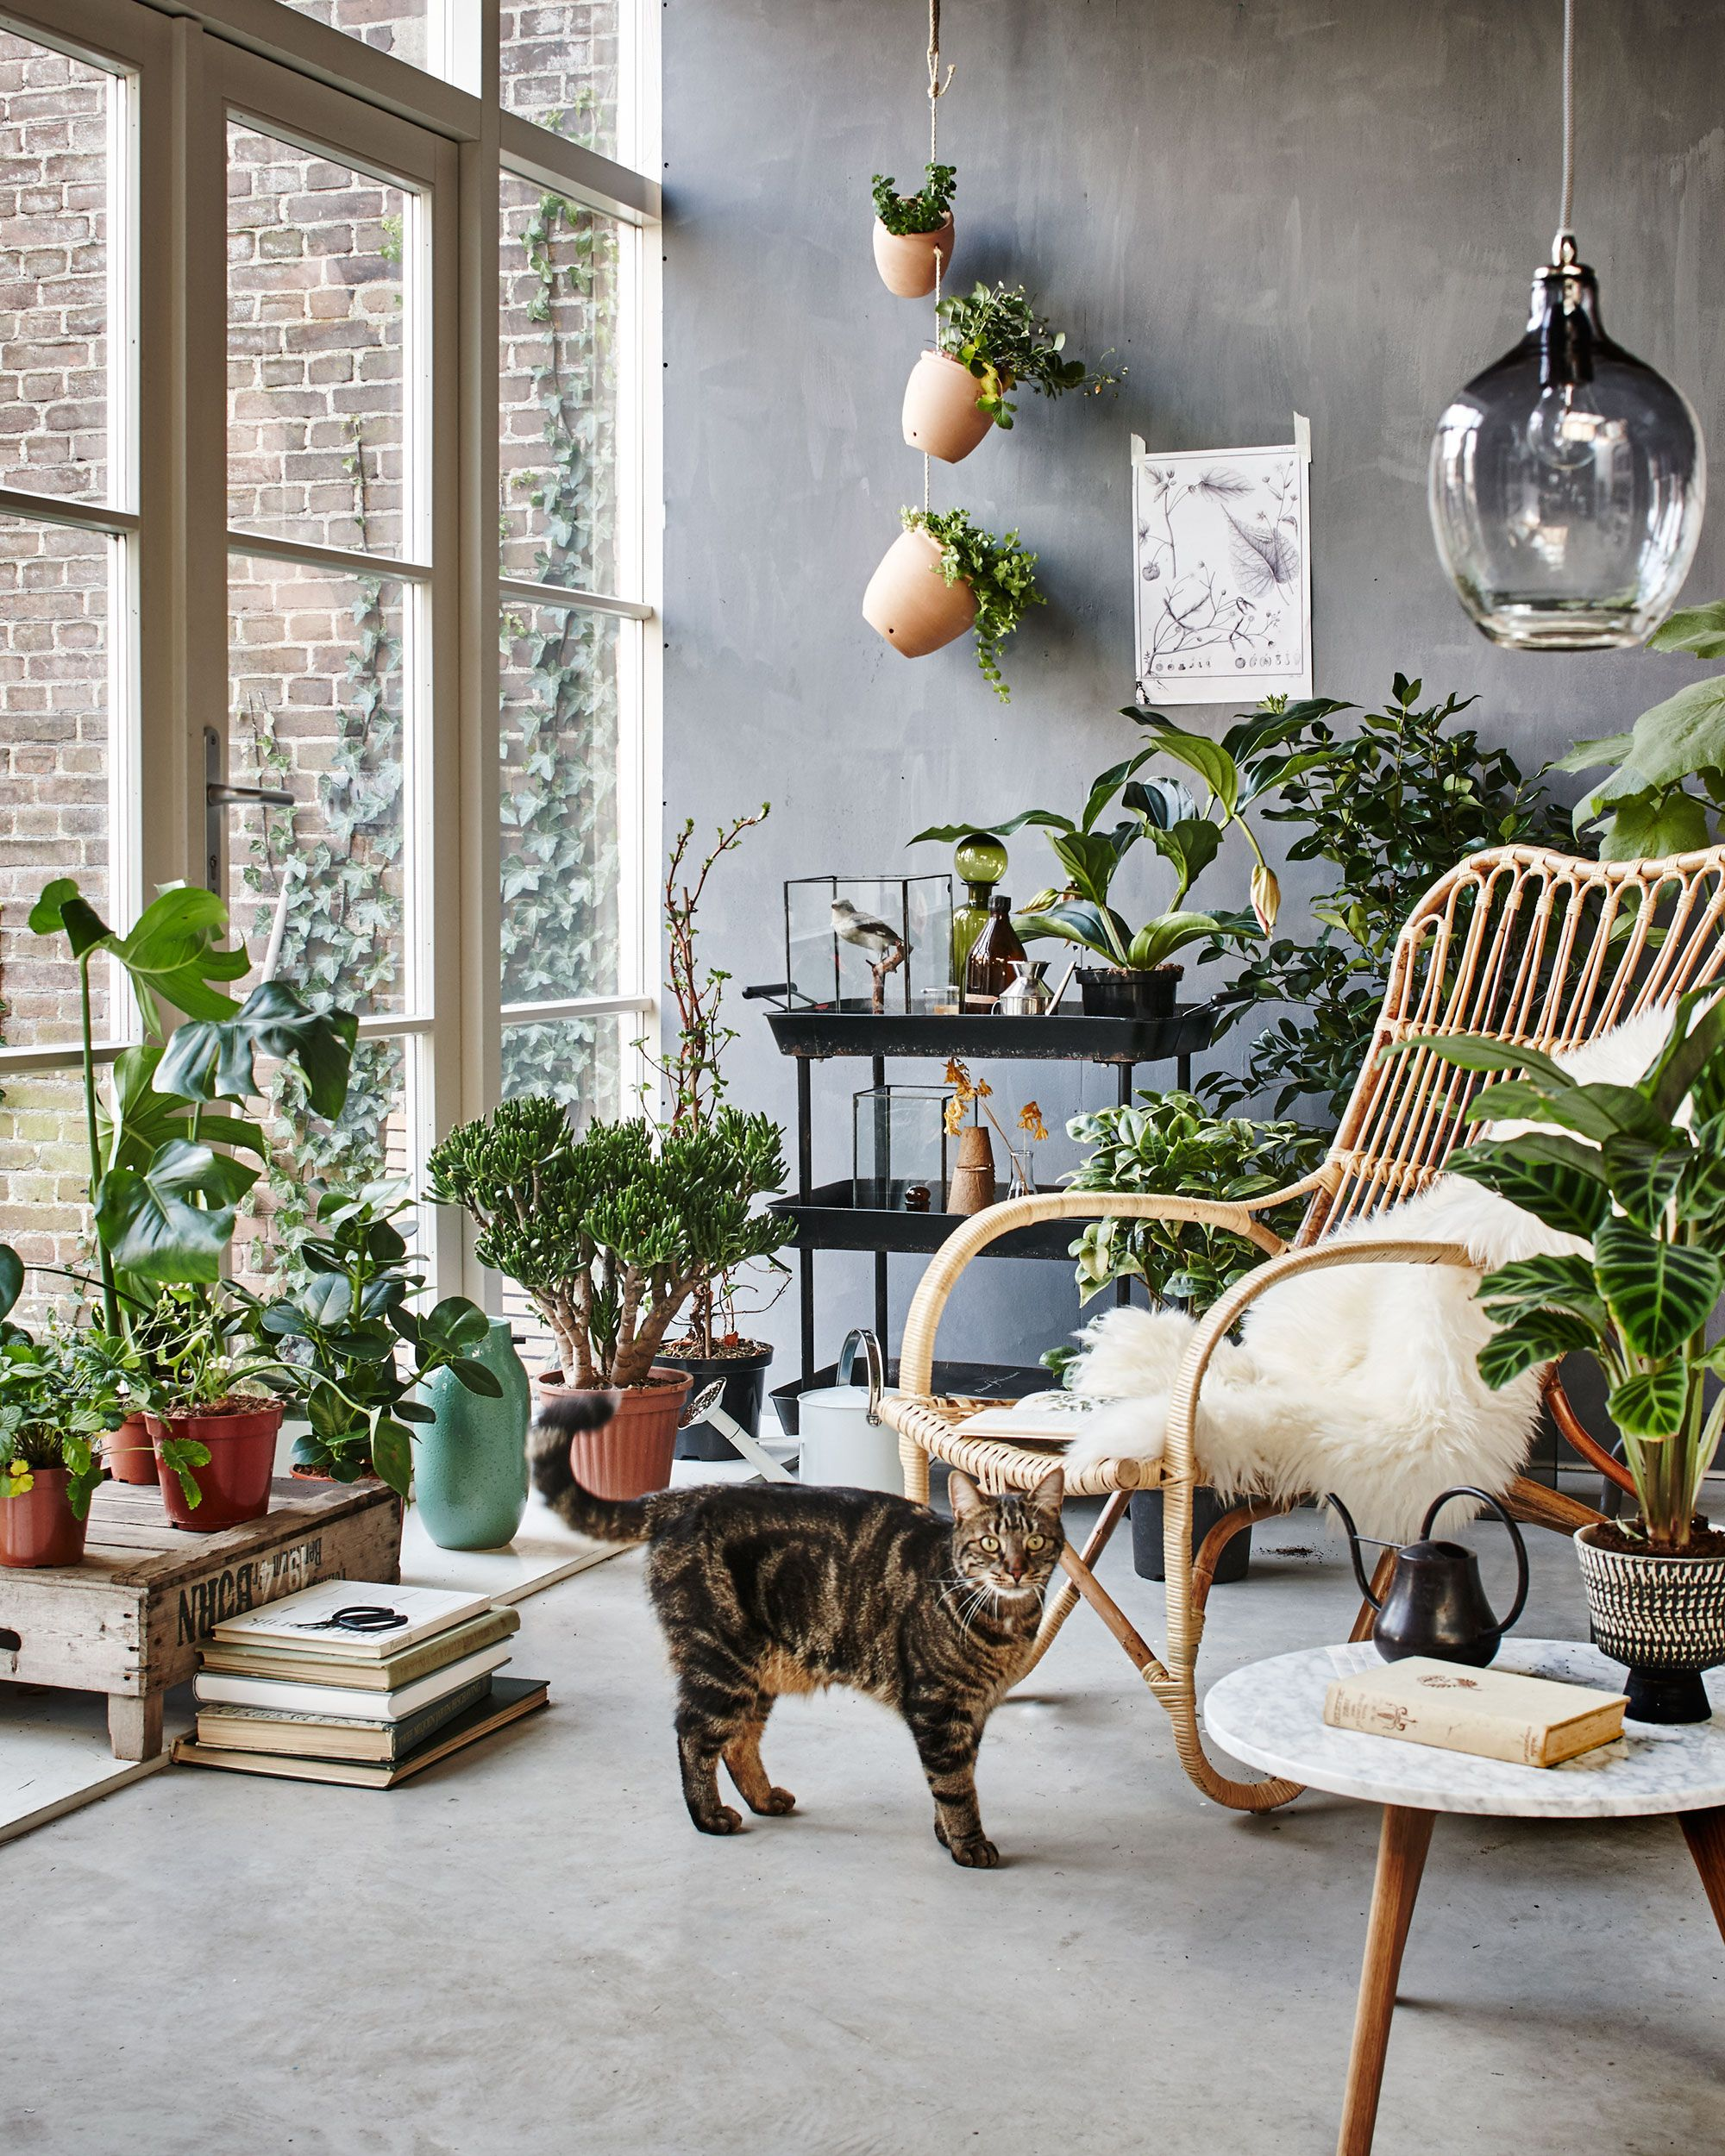 Living Room Flowers Pictures Ideas Botanic Orangery With A Rattan Chair Plants And Cat Styling Fietje Bruijn Marianne Luning Frans Uyterlinde Vtwonen June 2015